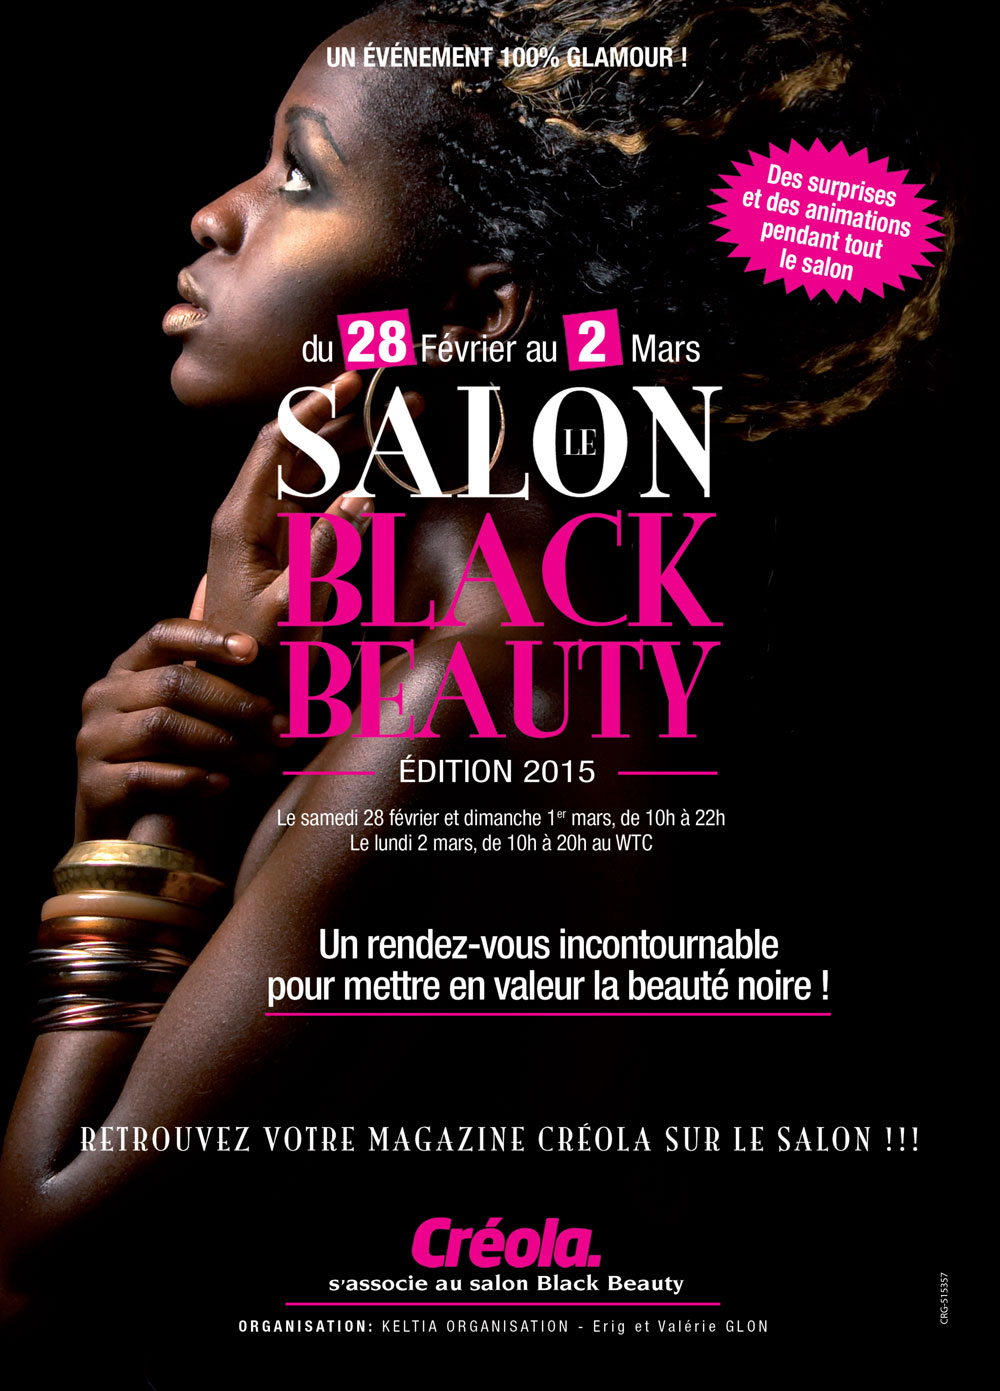 salon-black-beauty-page-creola-2015.jpg